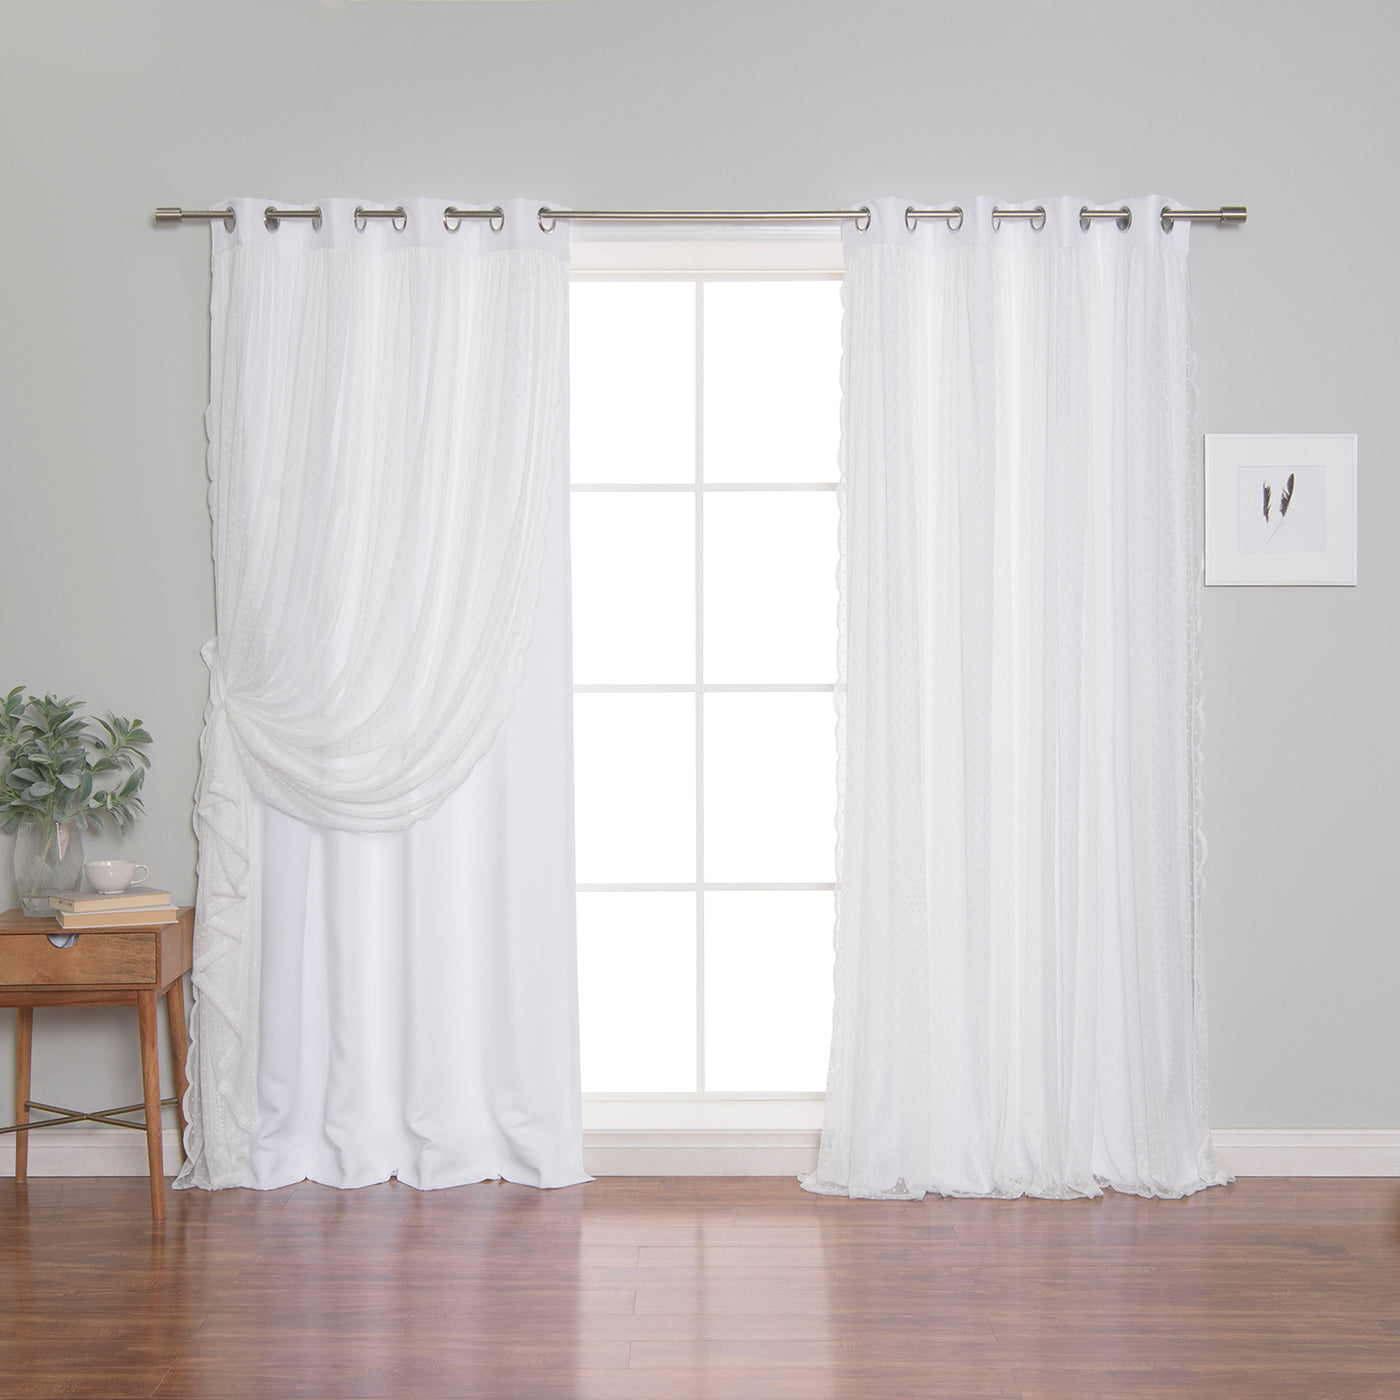 Dotted Lace Overlay Blackout Curtains